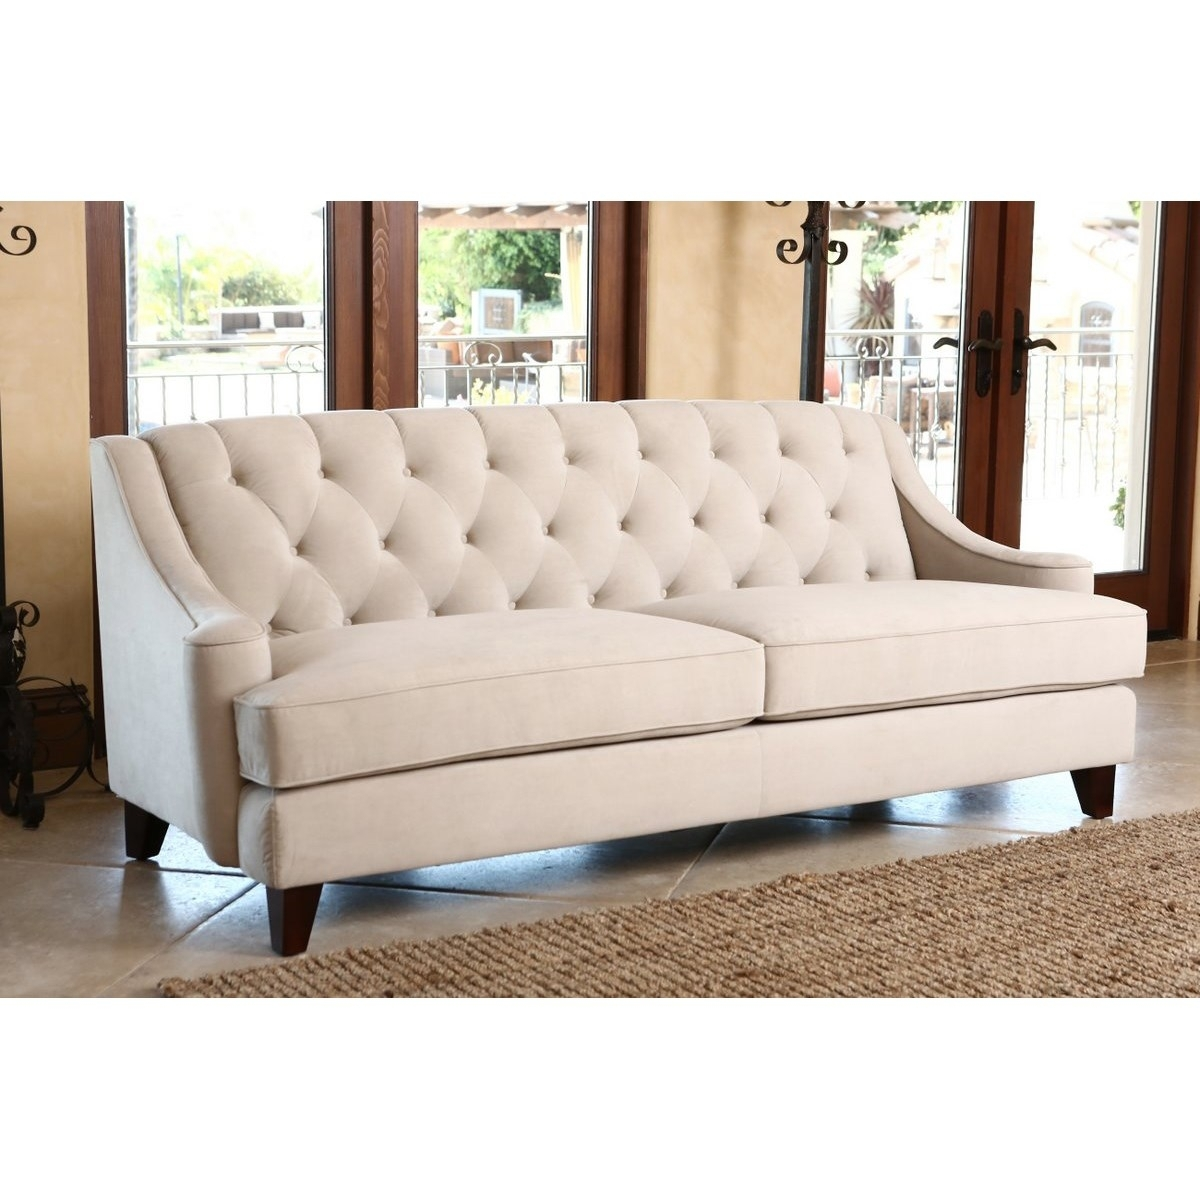 Furniture : Klaussner Loewy Sofa Sofa Velour Beige Vintage Pink in Quad Cities Sectional Sofas (Image 7 of 10)